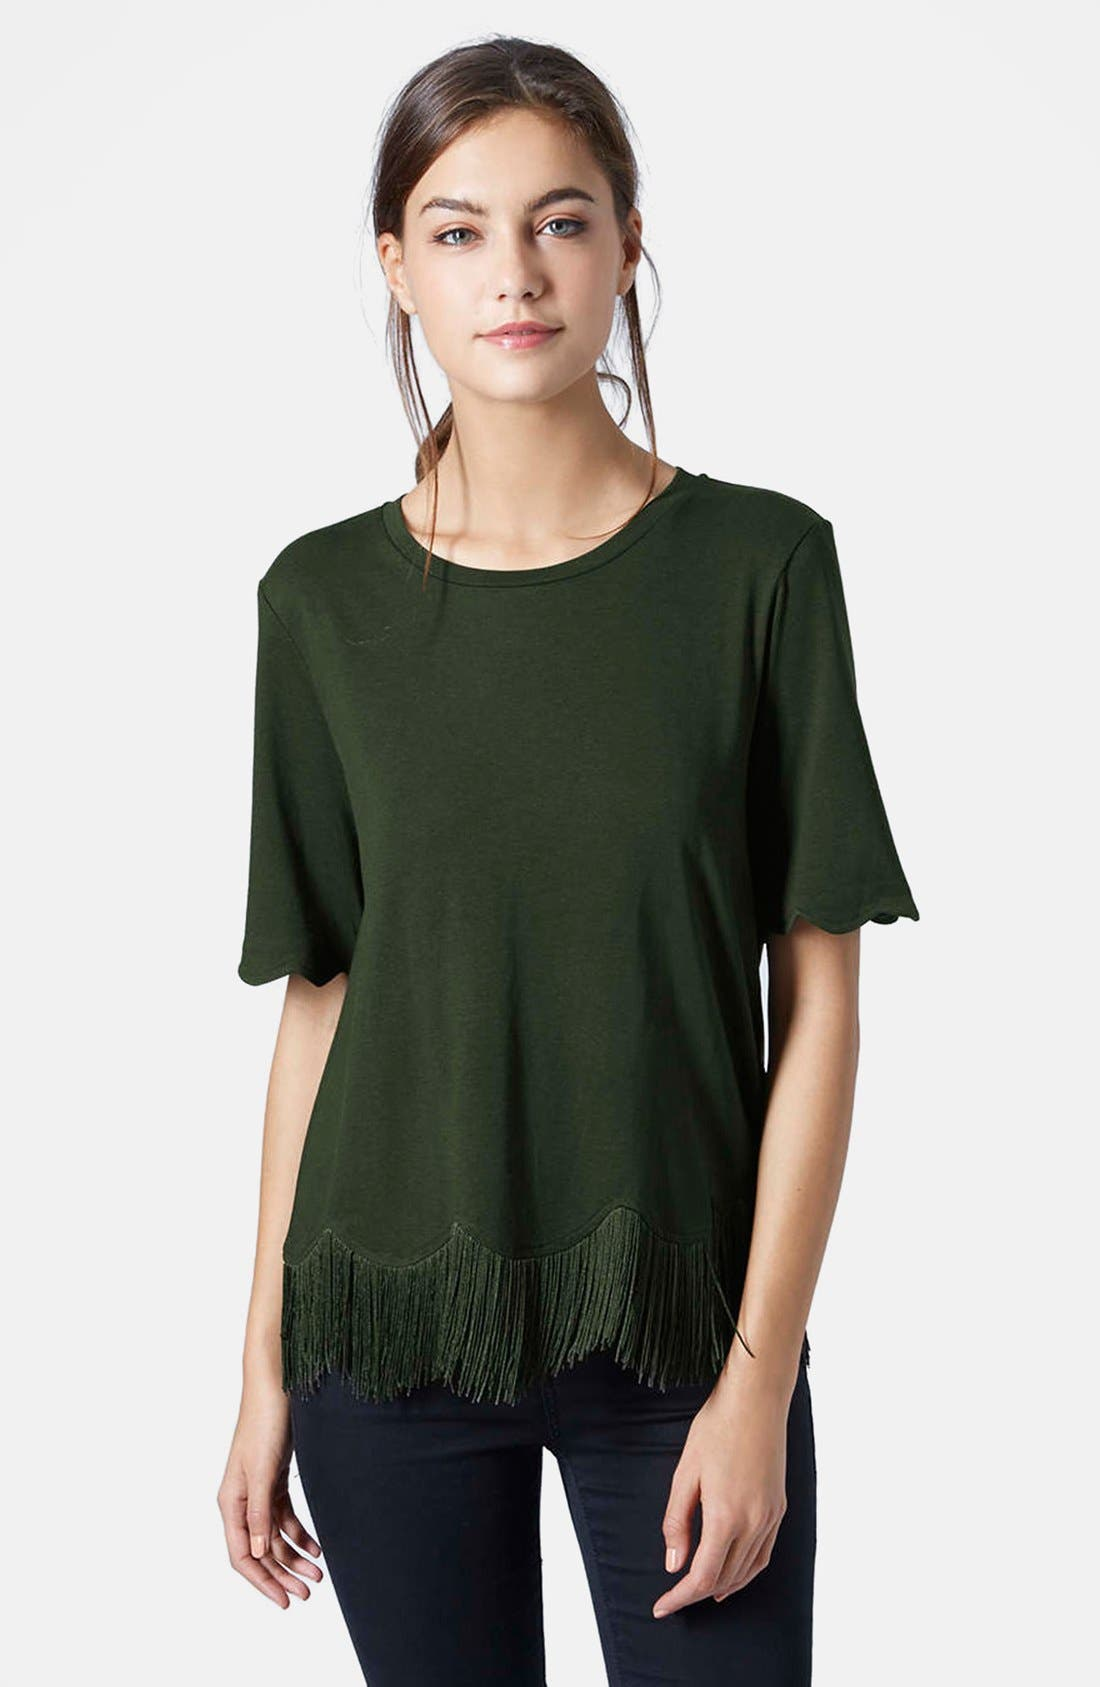 TOPSHOP, Fringe Scallop Tee, Main thumbnail 1, color, 301